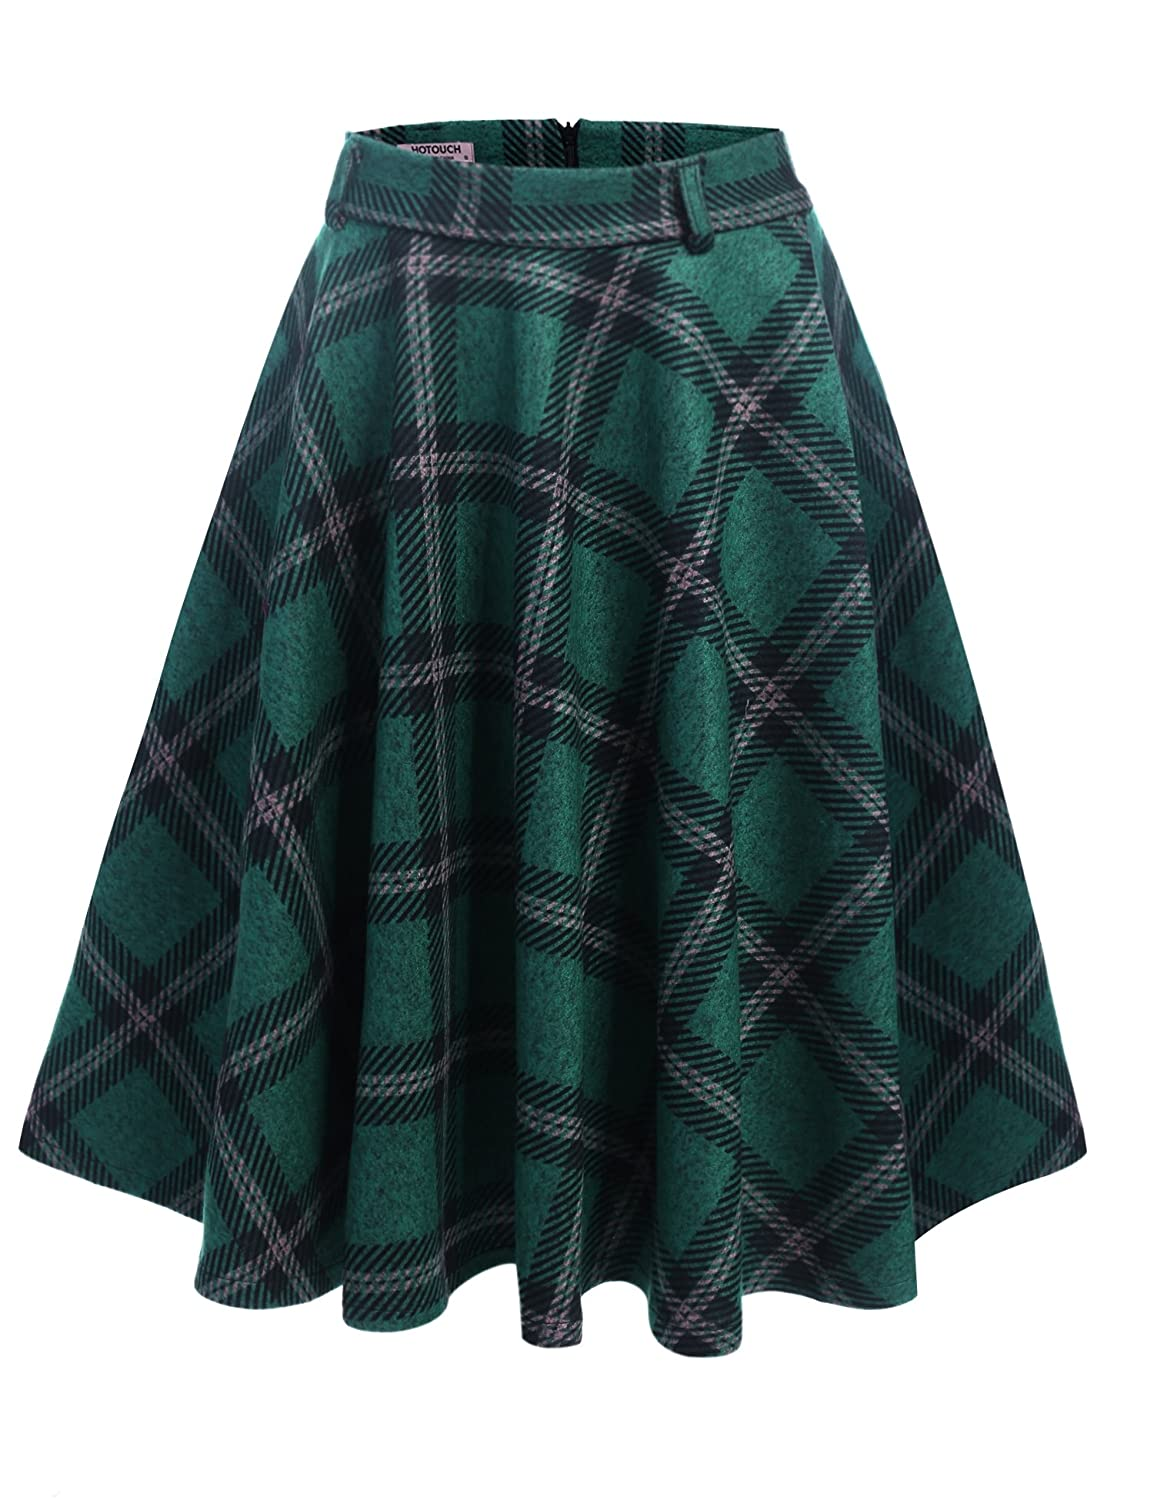 1940s Style Skirts- High Waist Vintage Skirts HOTOUCH Women High Waist A Line Pleated Flared Plaid Swing Knee Skirts $27.99 AT vintagedancer.com